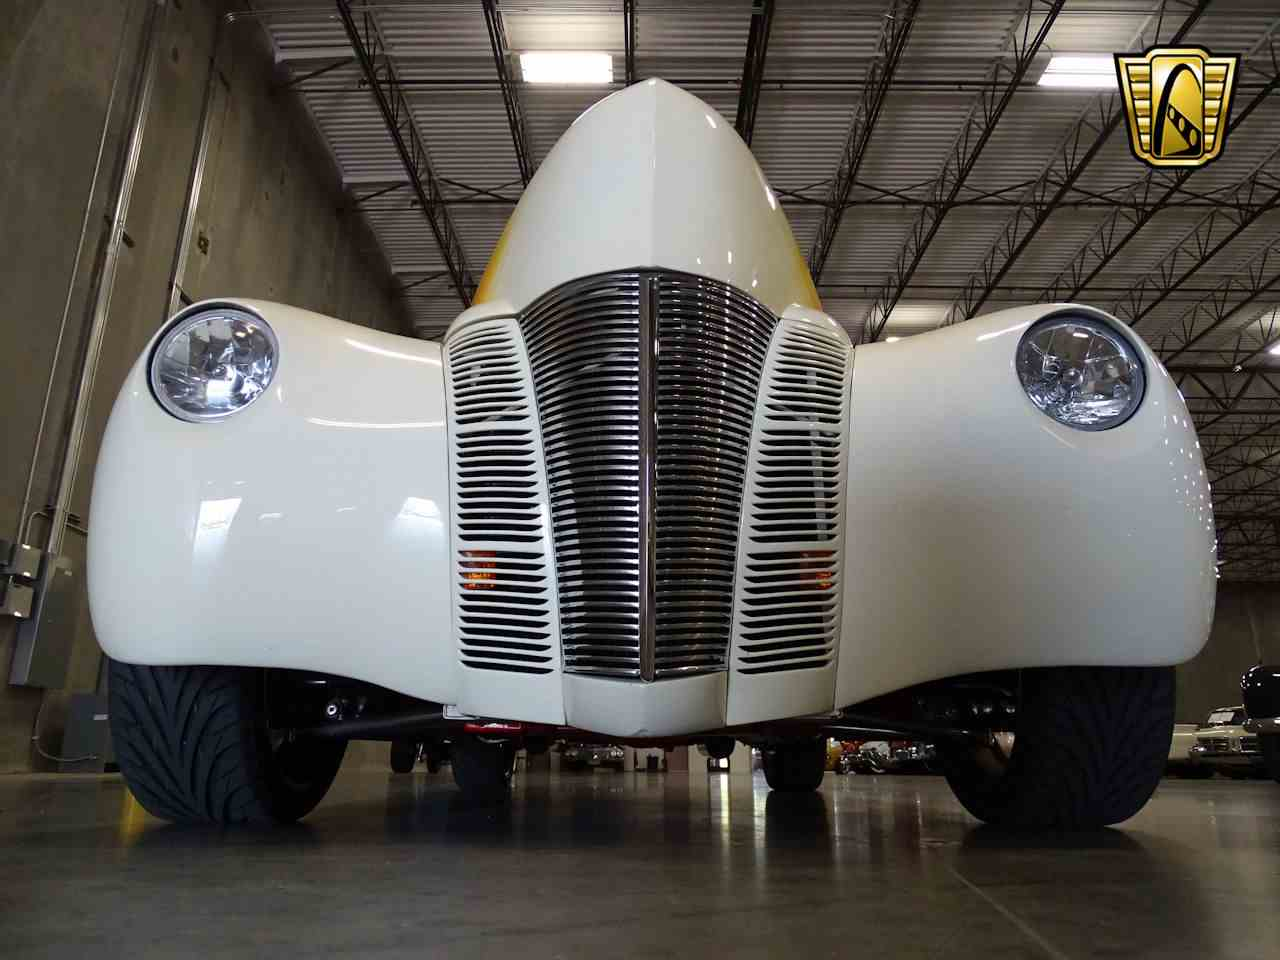 Large Picture of 1940 Ford Coupe located in DFW Airport Texas - $84,000.00 Offered by Gateway Classic Cars - Dallas - LVD7